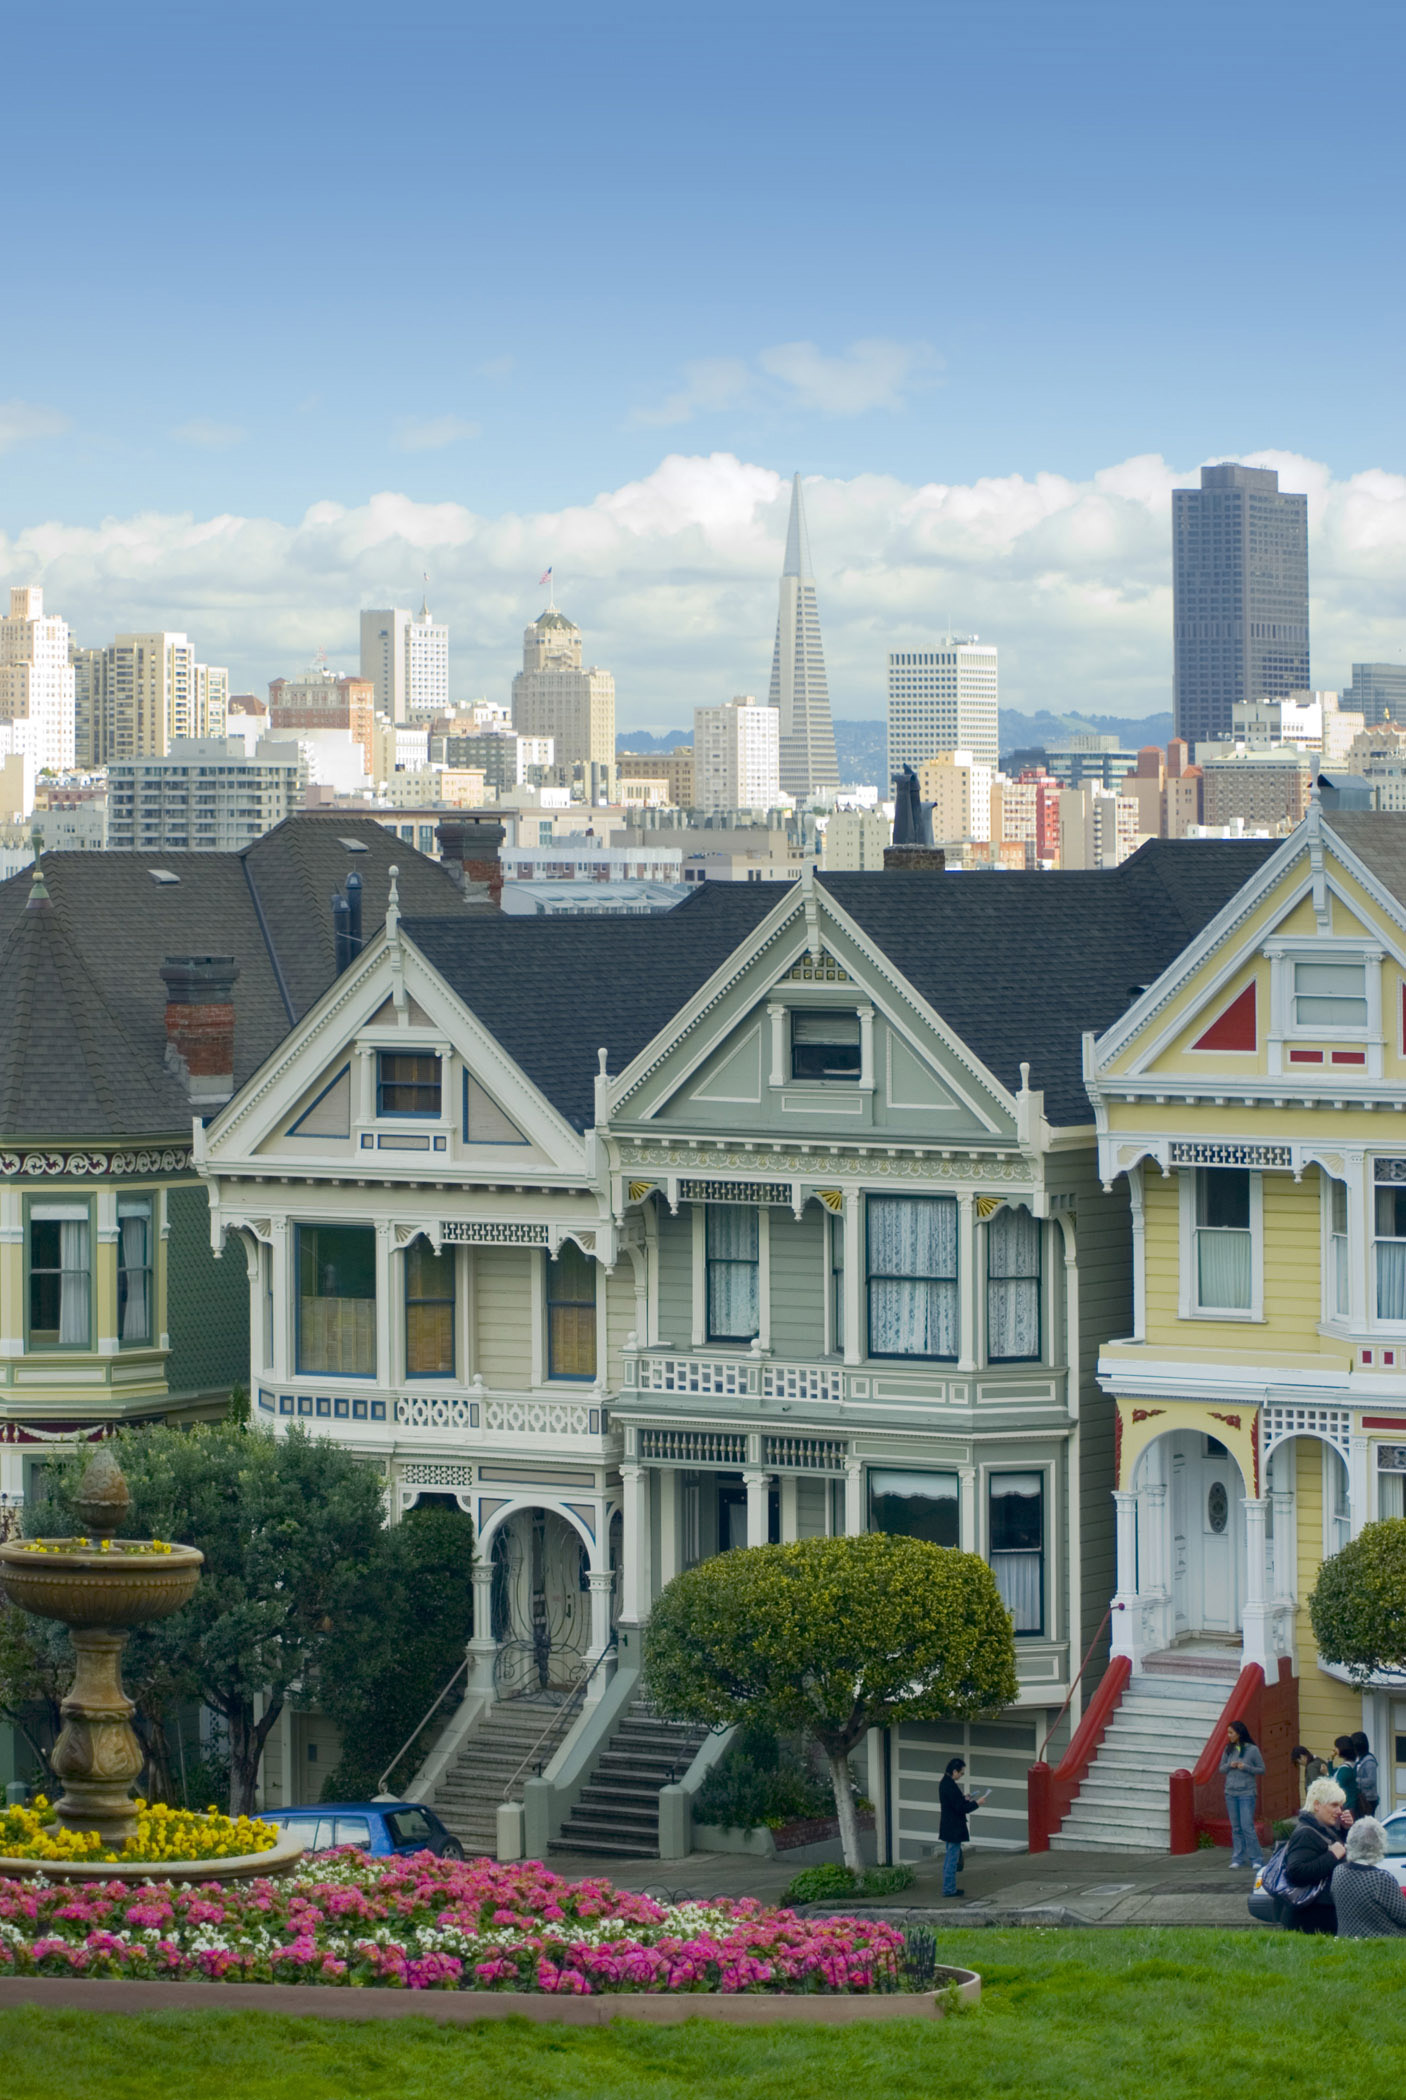 View of the Painted Ladies, a row of iconic landmark historical townhouses in Alamo Square, San Francisco, California, USA